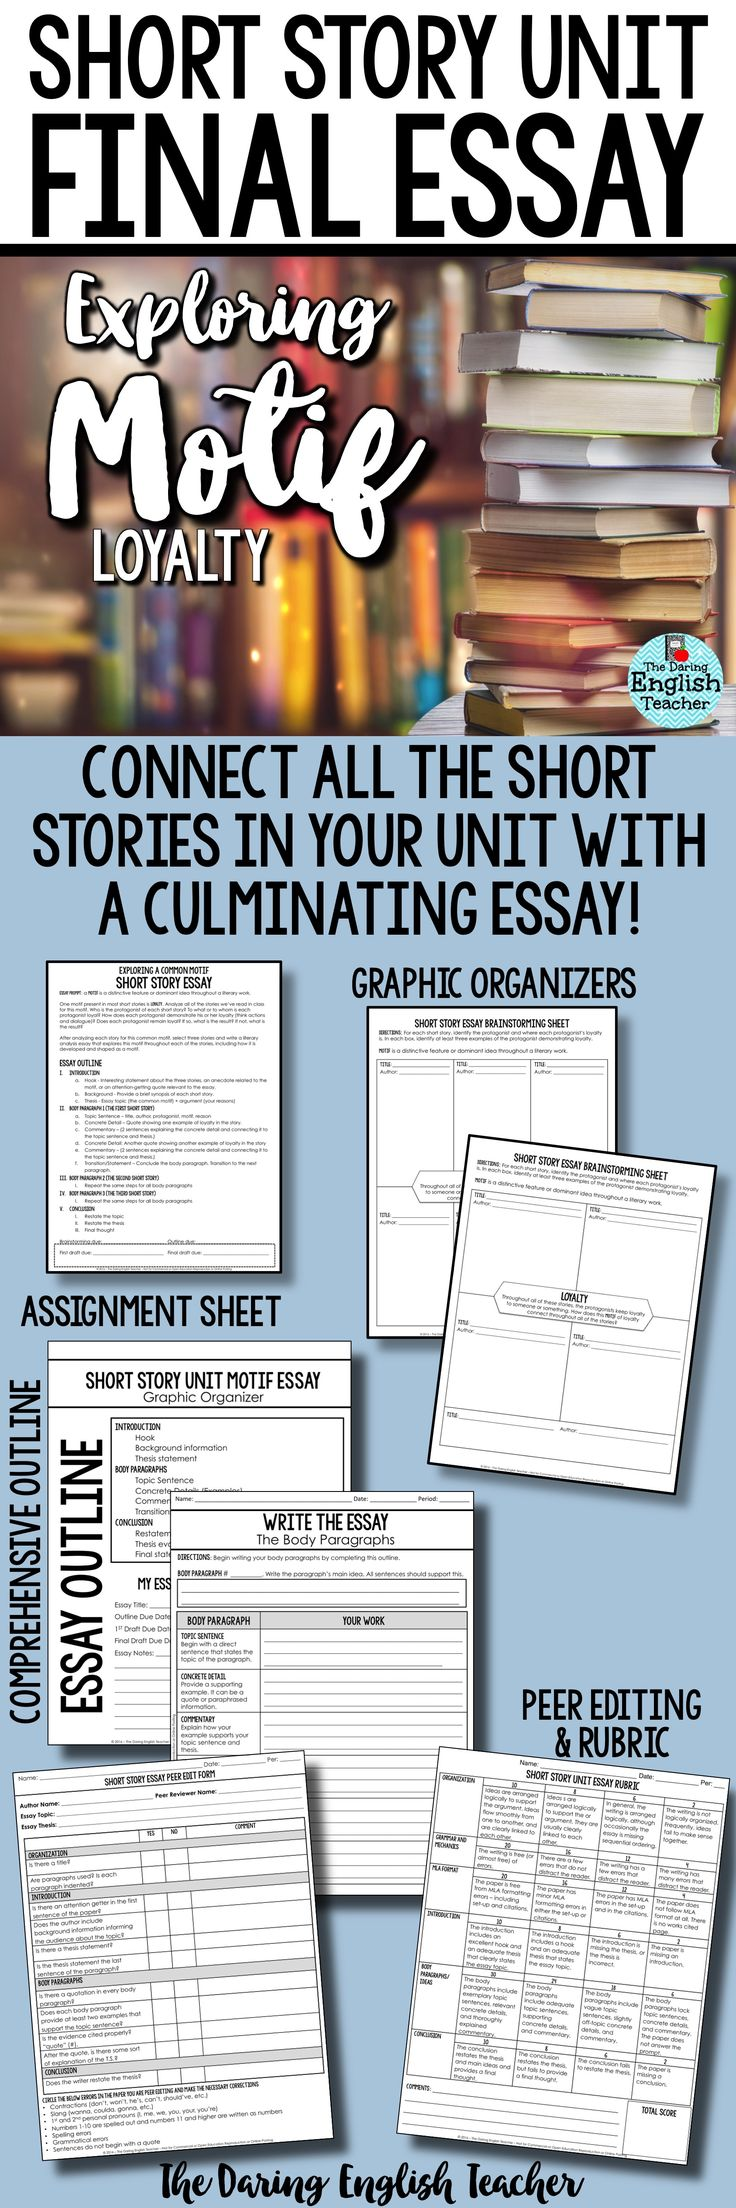 short story writing prompts for college students